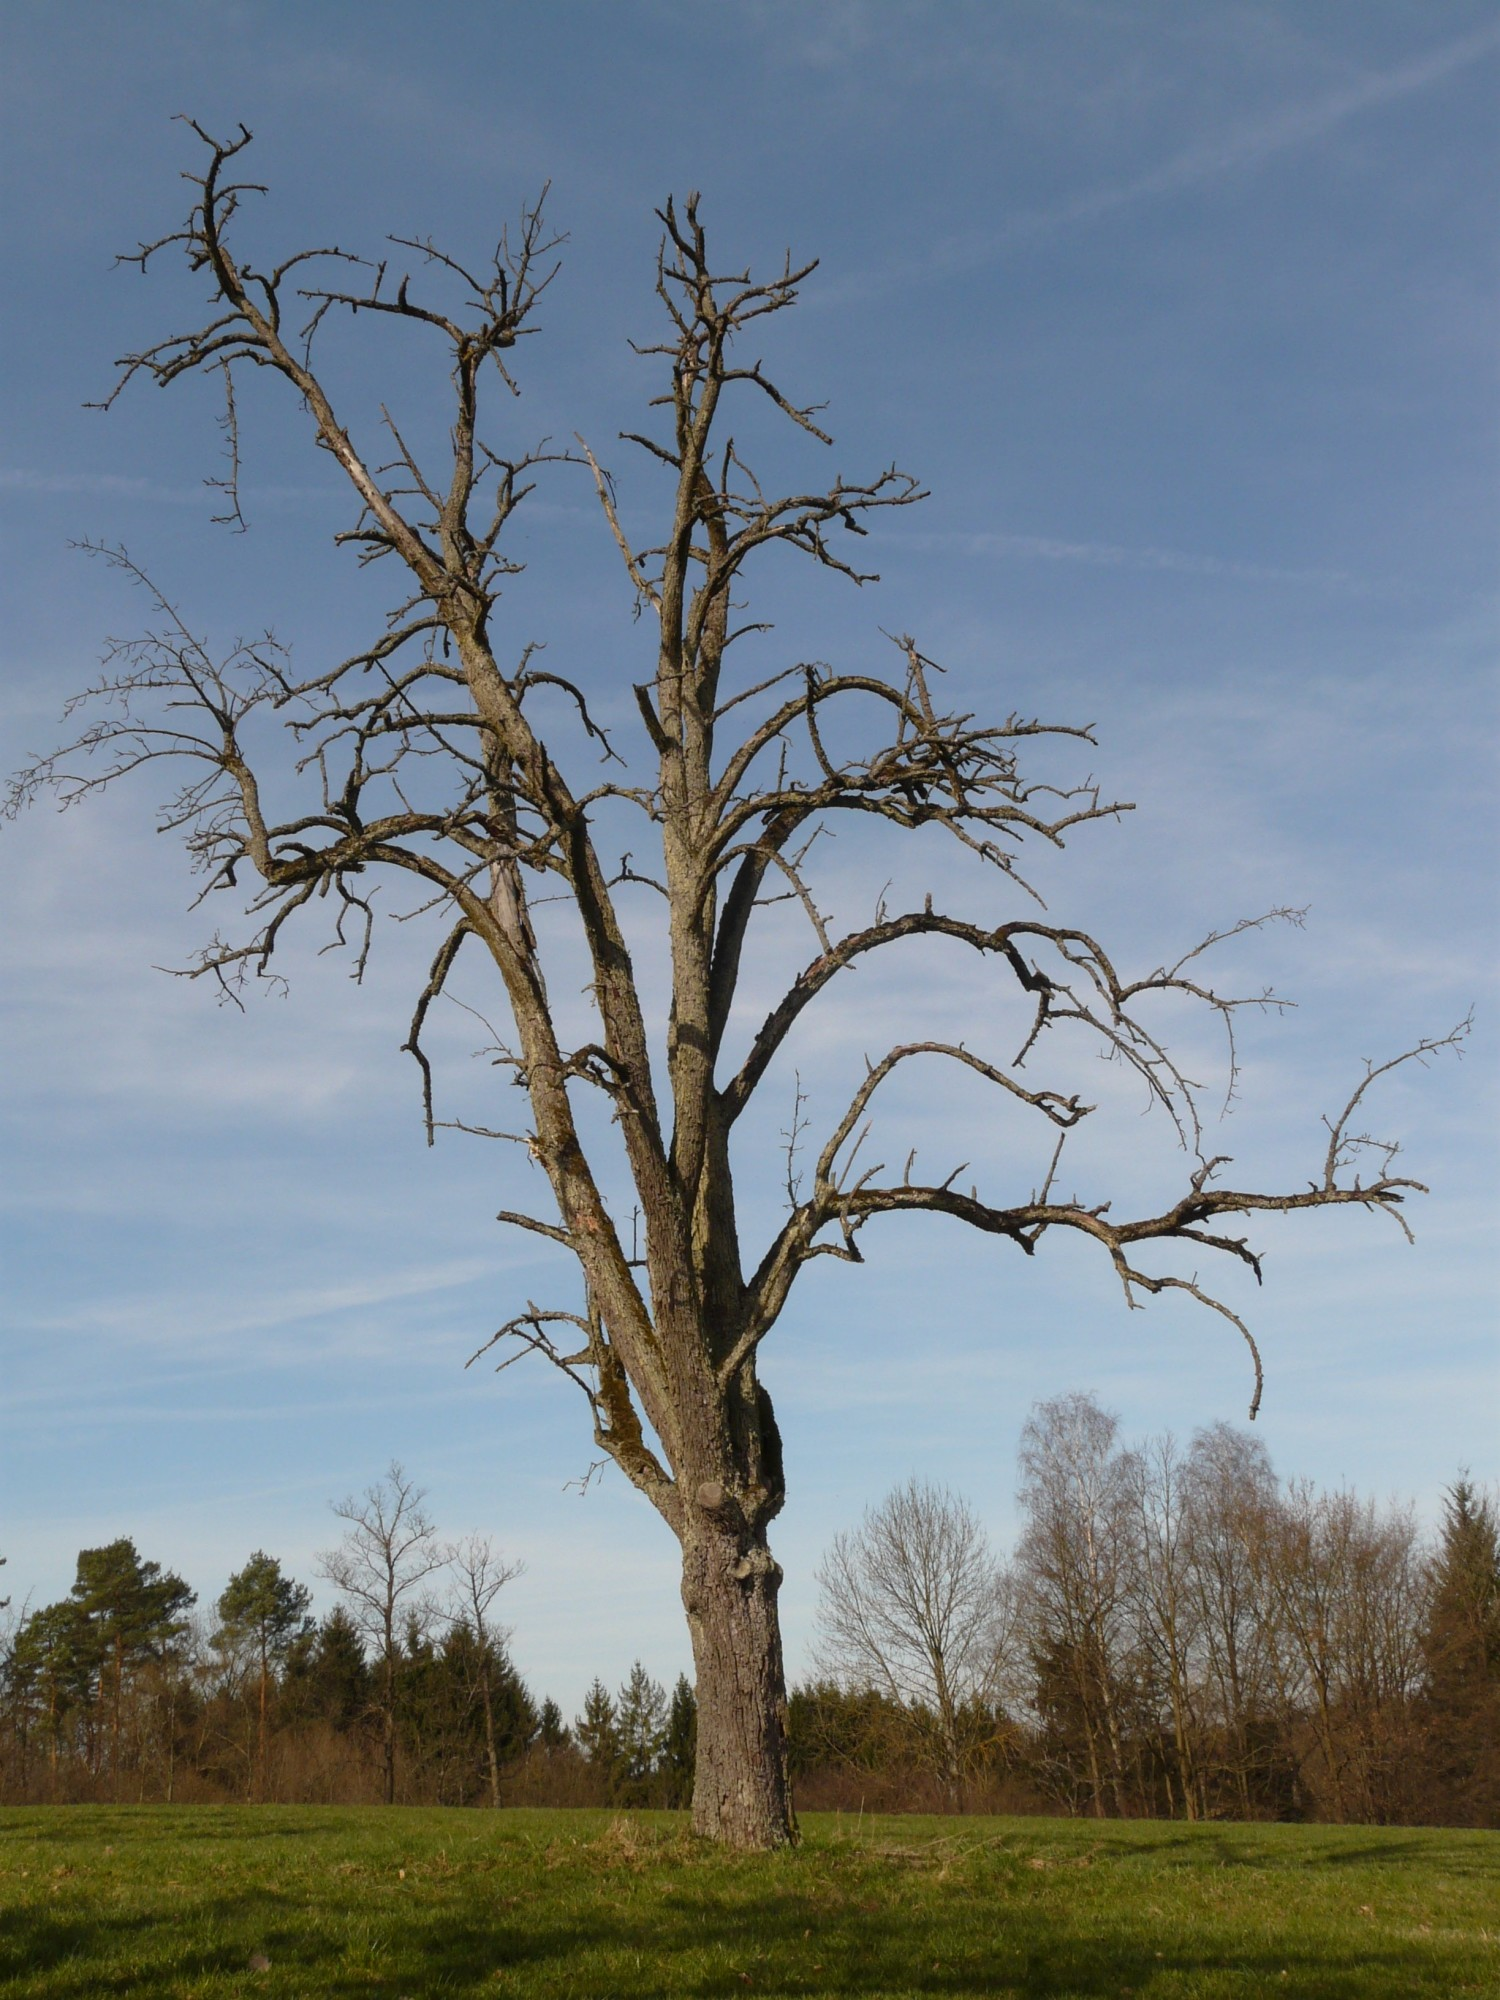 dying tree in field